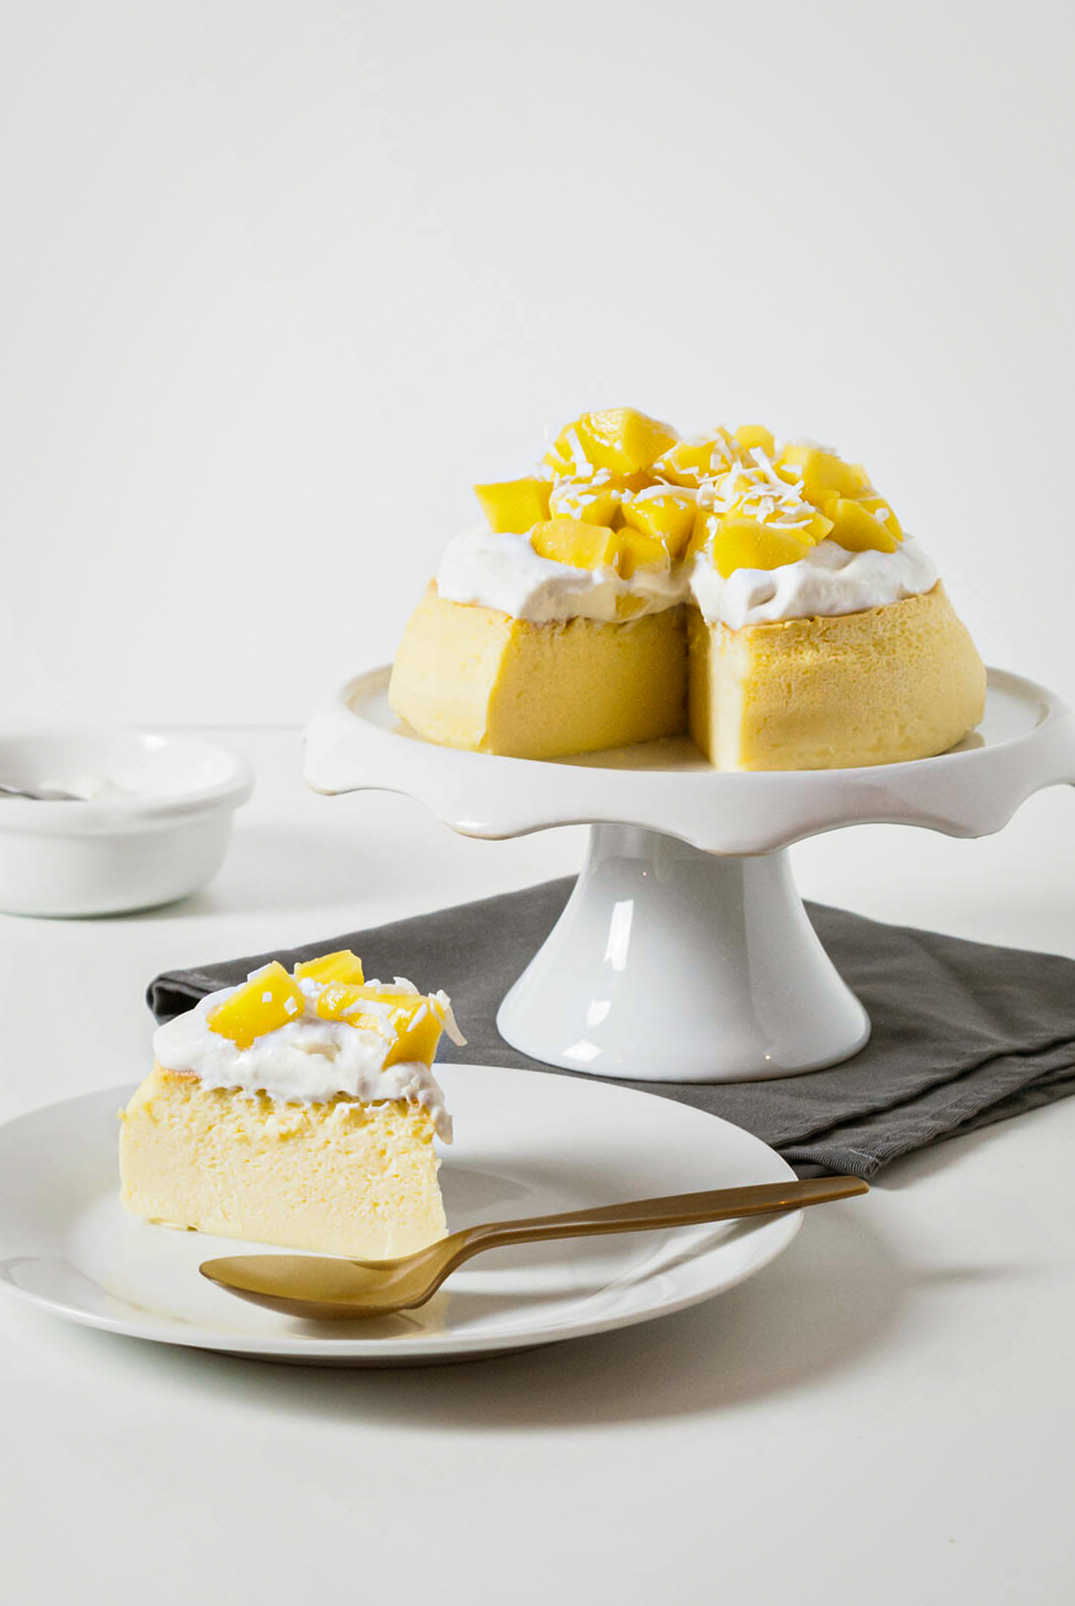 Cheesecake japonais coco mangue part coupée - Lilie Bakery